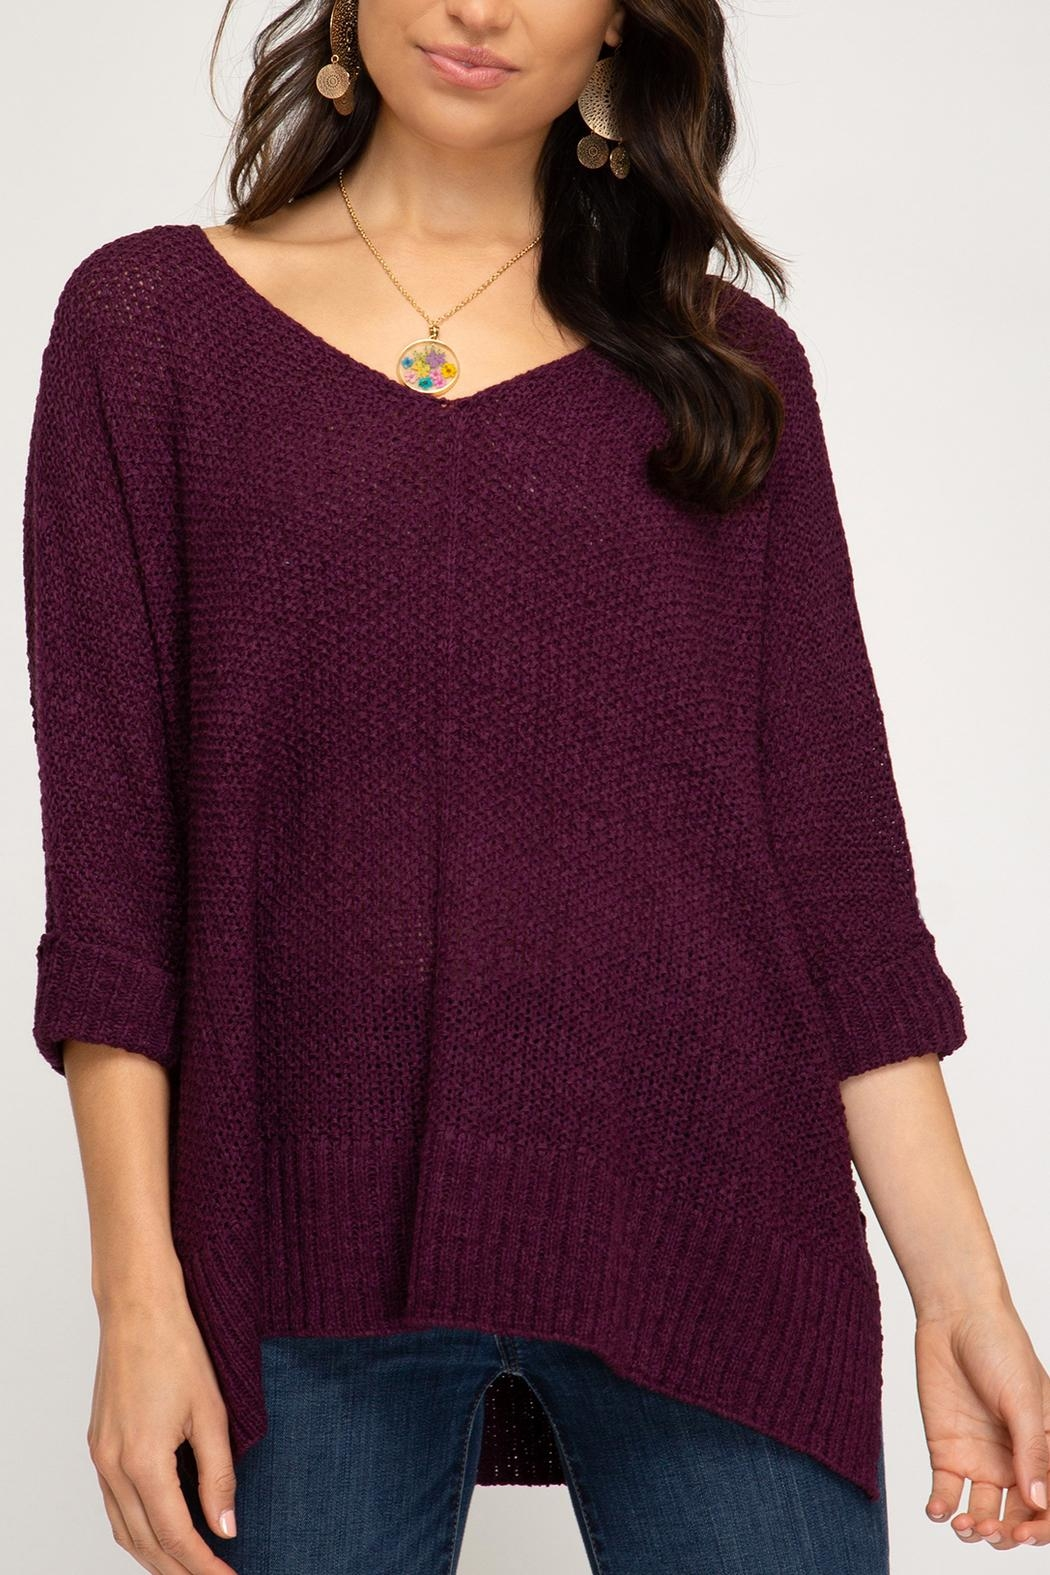 She + Sky High-Low Slouchy Knit Sweater - Main Image